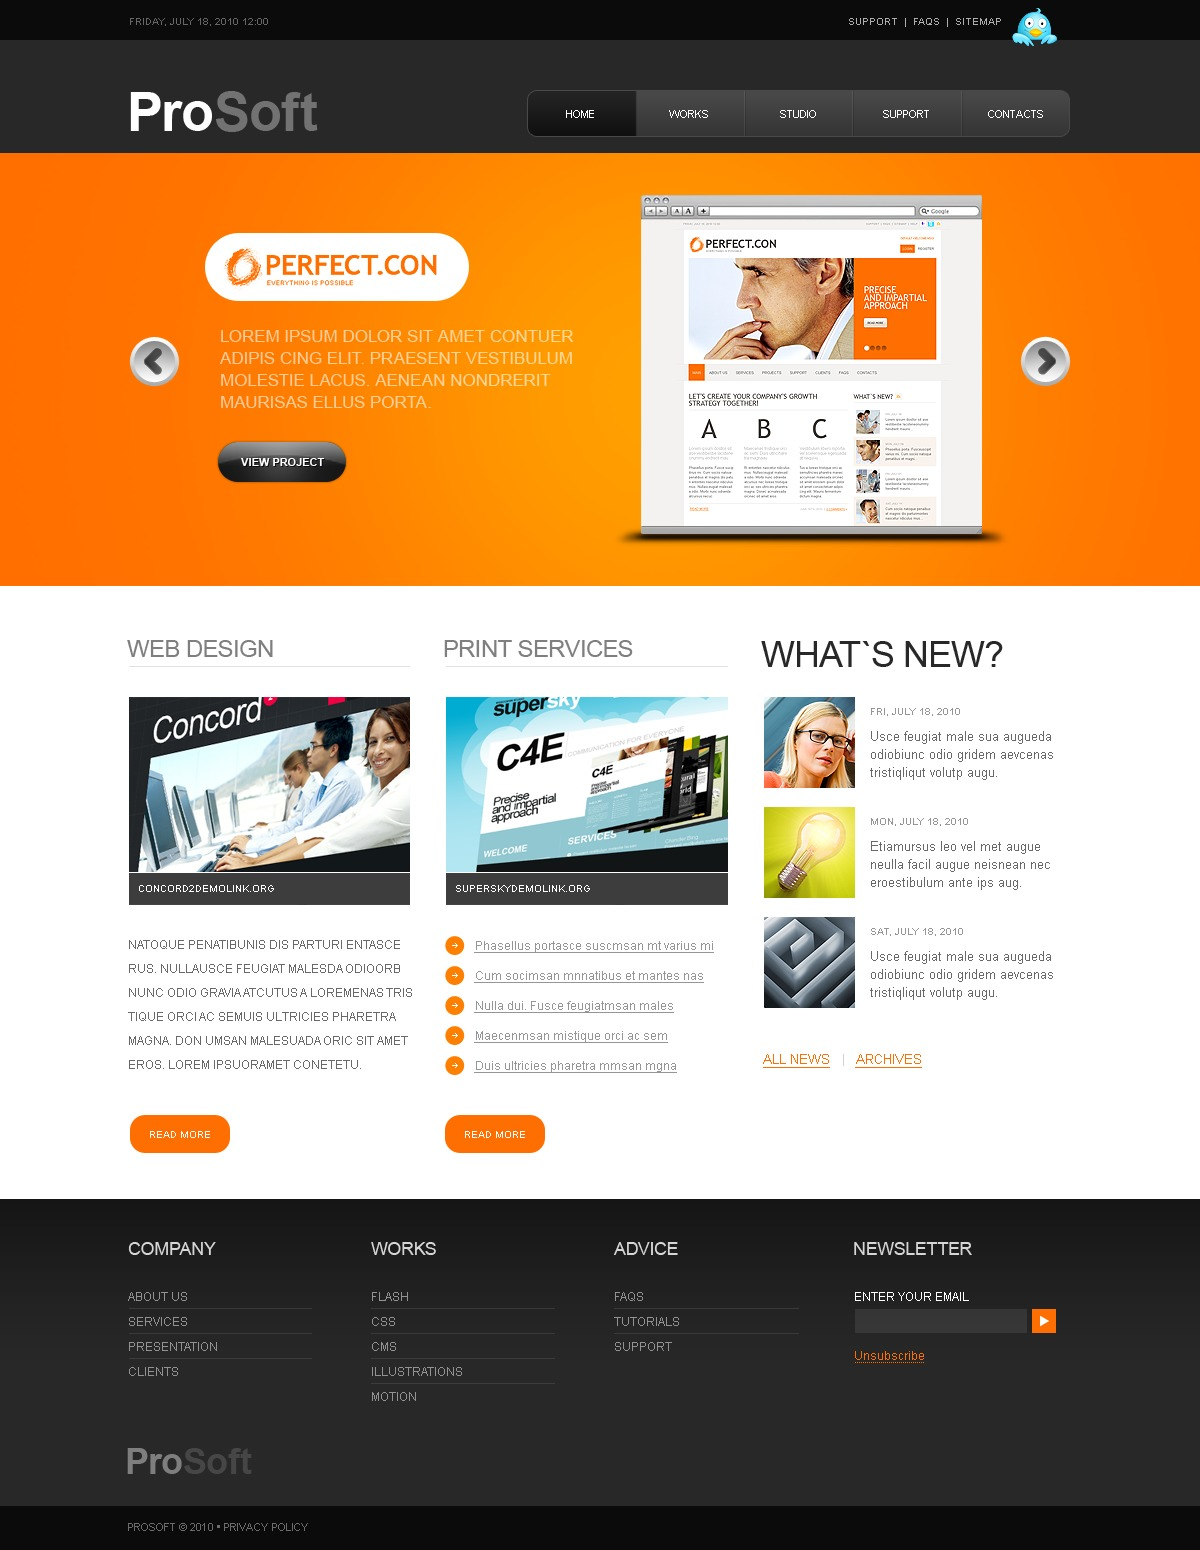 The Prosoft Software Company PSD Design 54454, one of the best PSD templates of its kind (software, flash 8, wide), also known as prosoft software company PSD template, enterprise solution PSD template, business PSD template, industry PSD template, technical PSD template, clients PSD template, customer support PSD template, automate PSD template, flow PSD template, services PSD template, plug-in PSD template, flex PSD template, profile PSD template, principles PSD template, web products PSD template, technology system and related with prosoft software company, enterprise solution, business, industry, technical, clients, customer support, automate, flow, services, plug-in, flex, profile, principles, web products, technology system, etc.